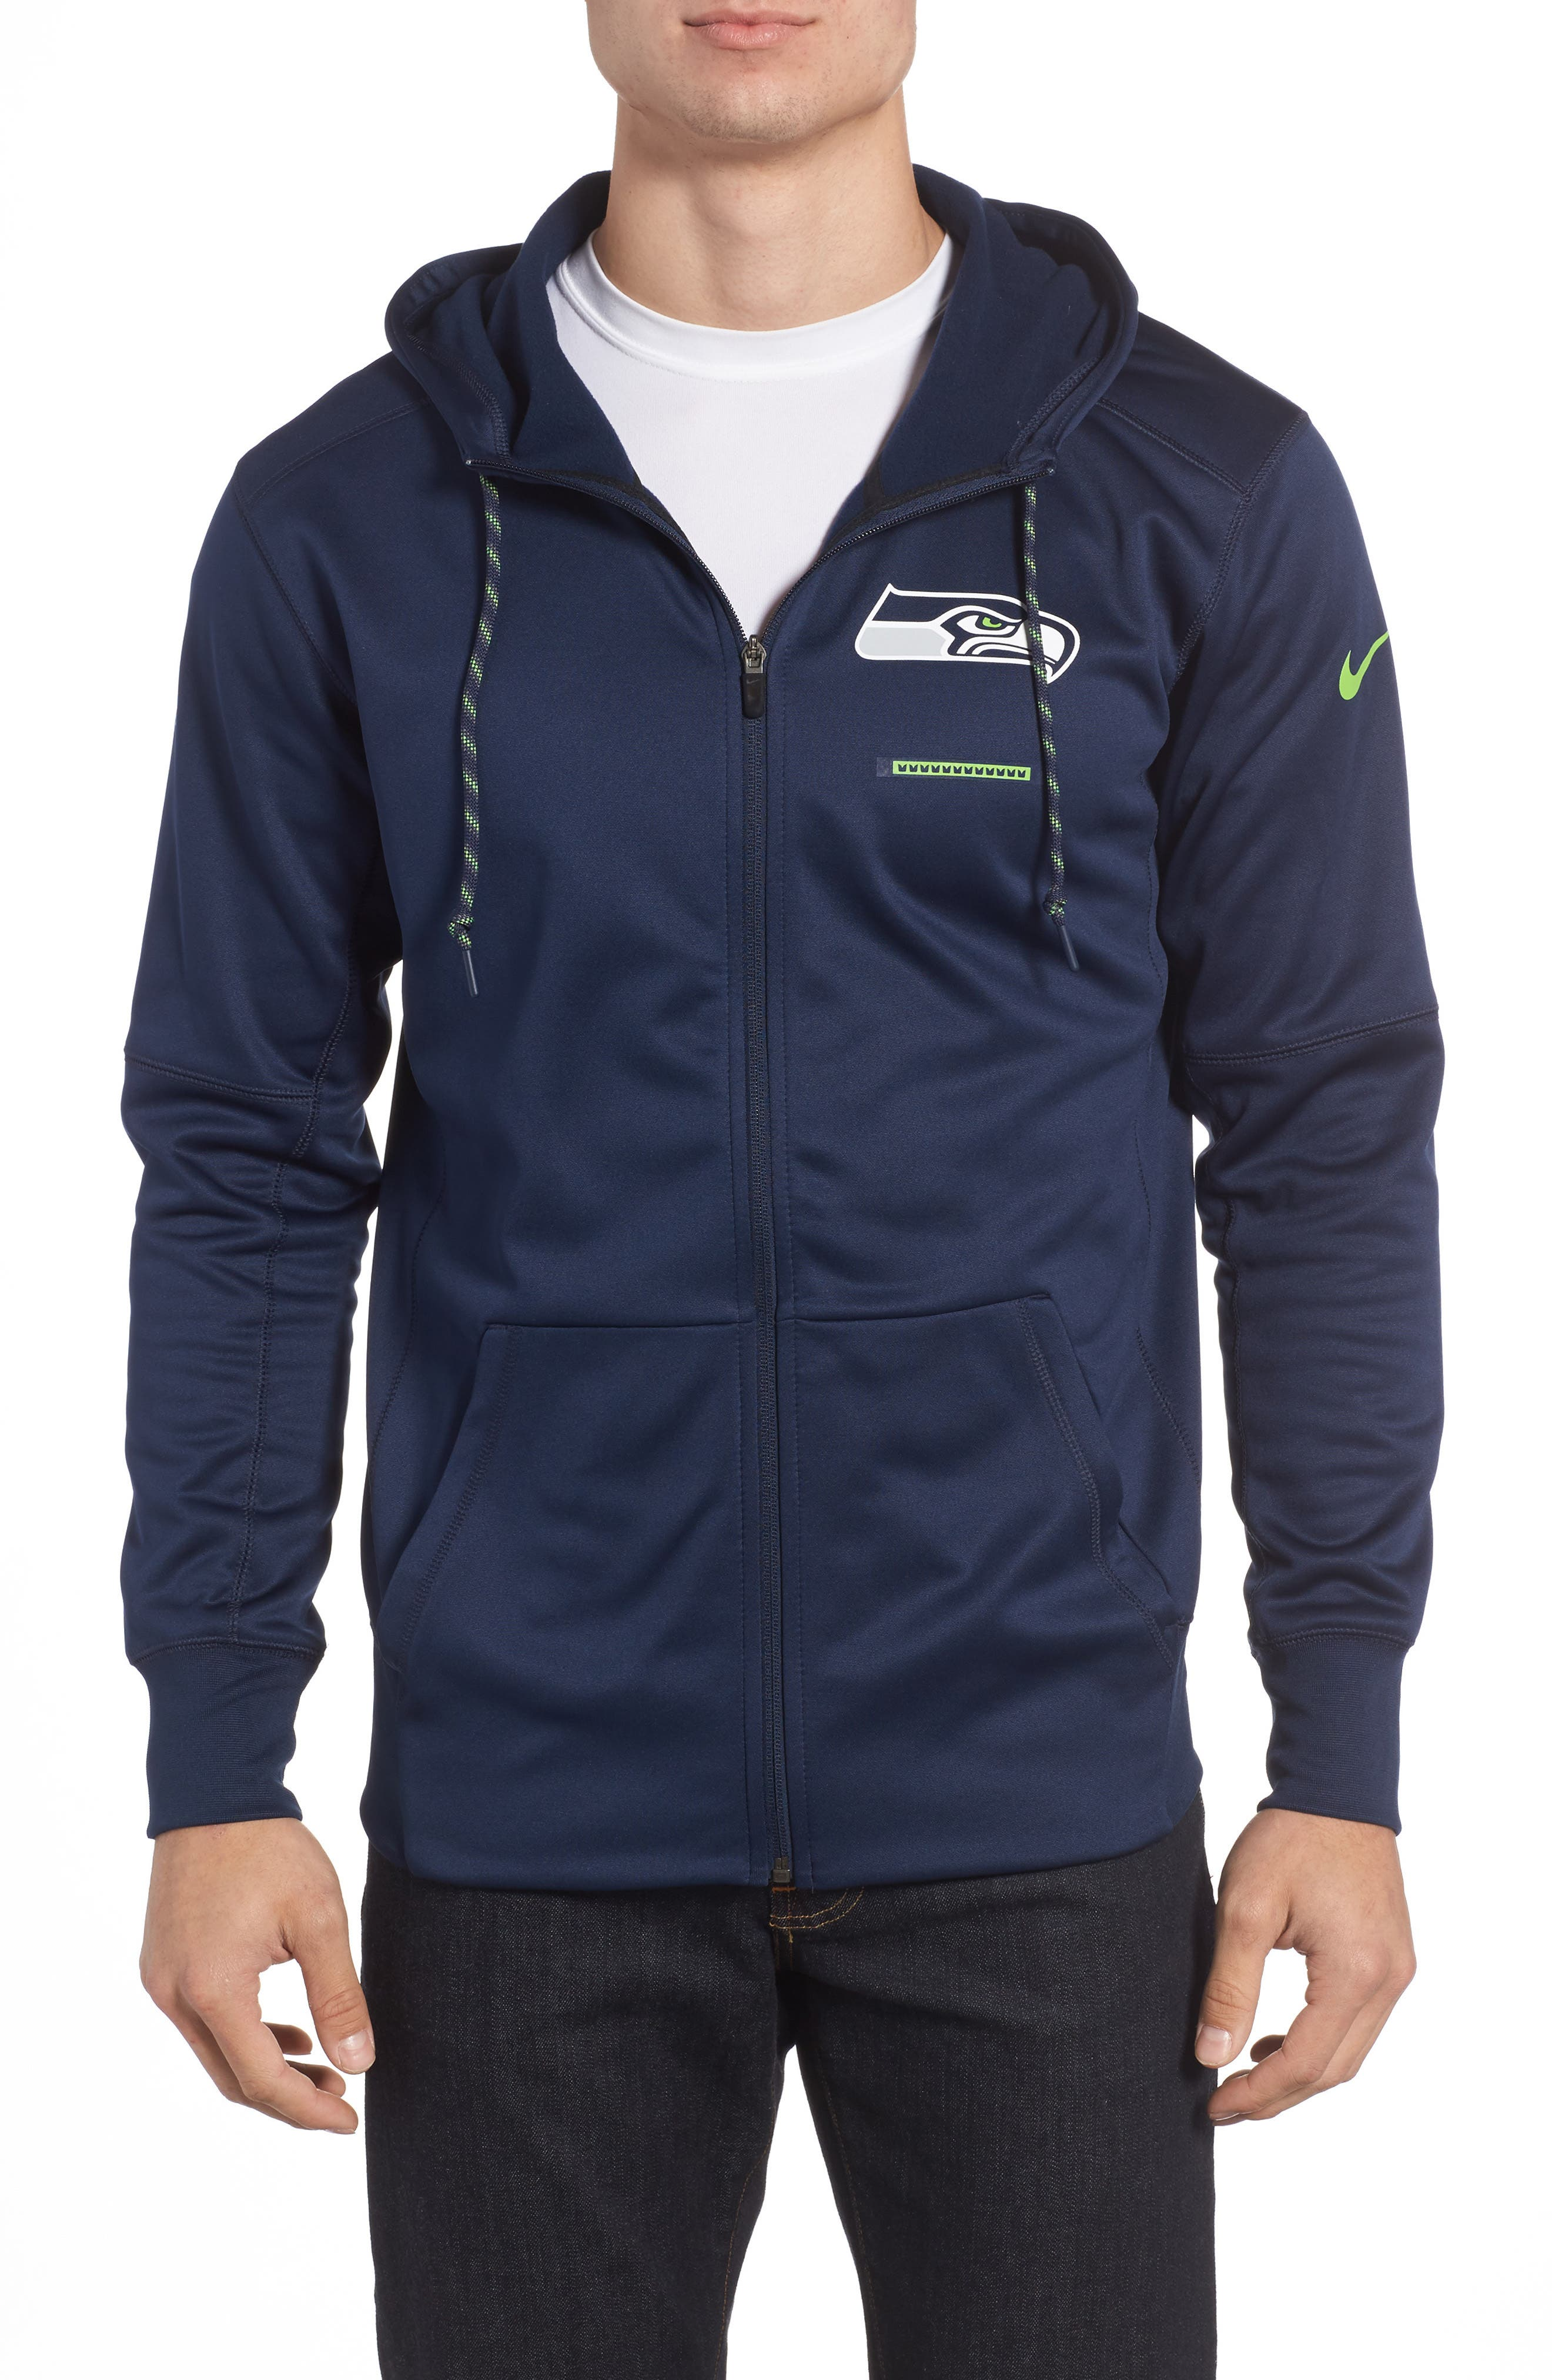 Therma-FIT NFL Graphic Zip Hoodie,                             Main thumbnail 1, color,                             Seahawks